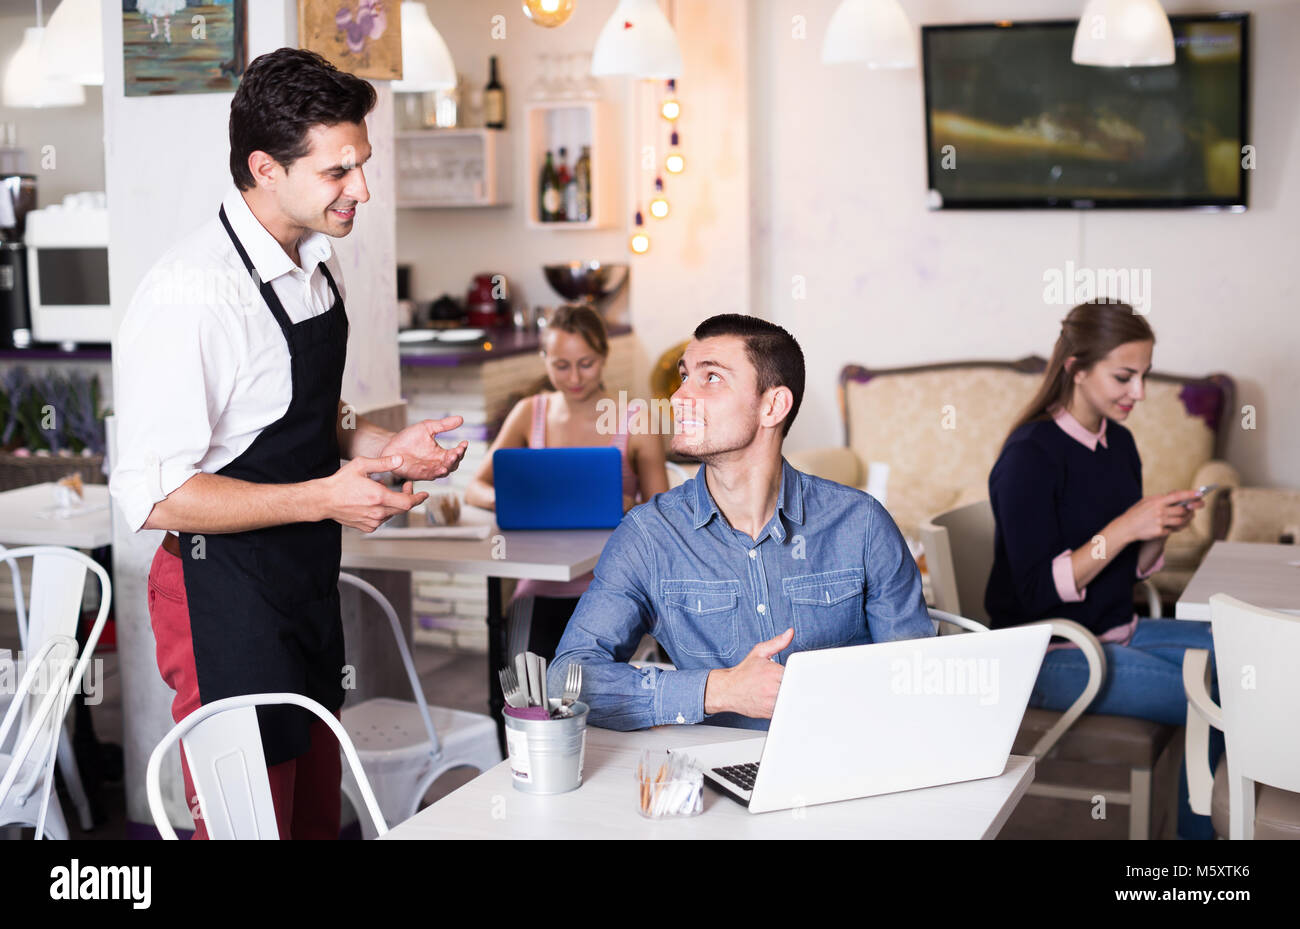 Male guest of comfy confectionery giving order to welcoming waiter - Stock Image